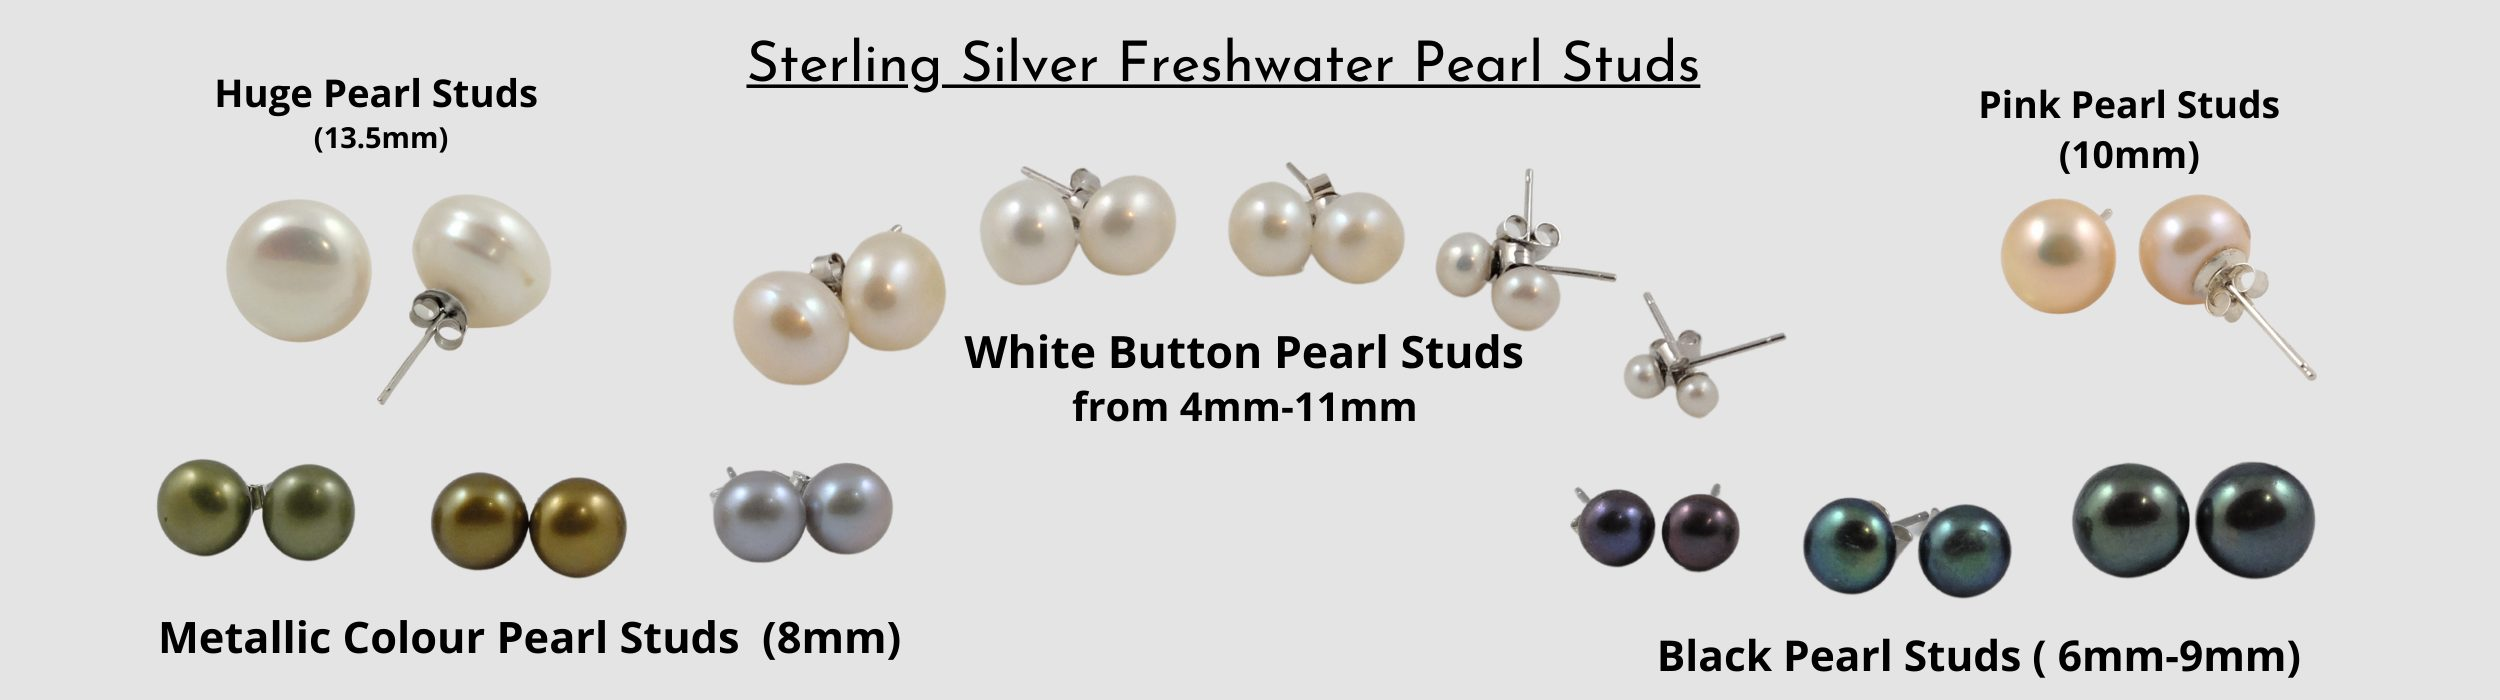 Freshwater Pearl & Sterling Silver Studs